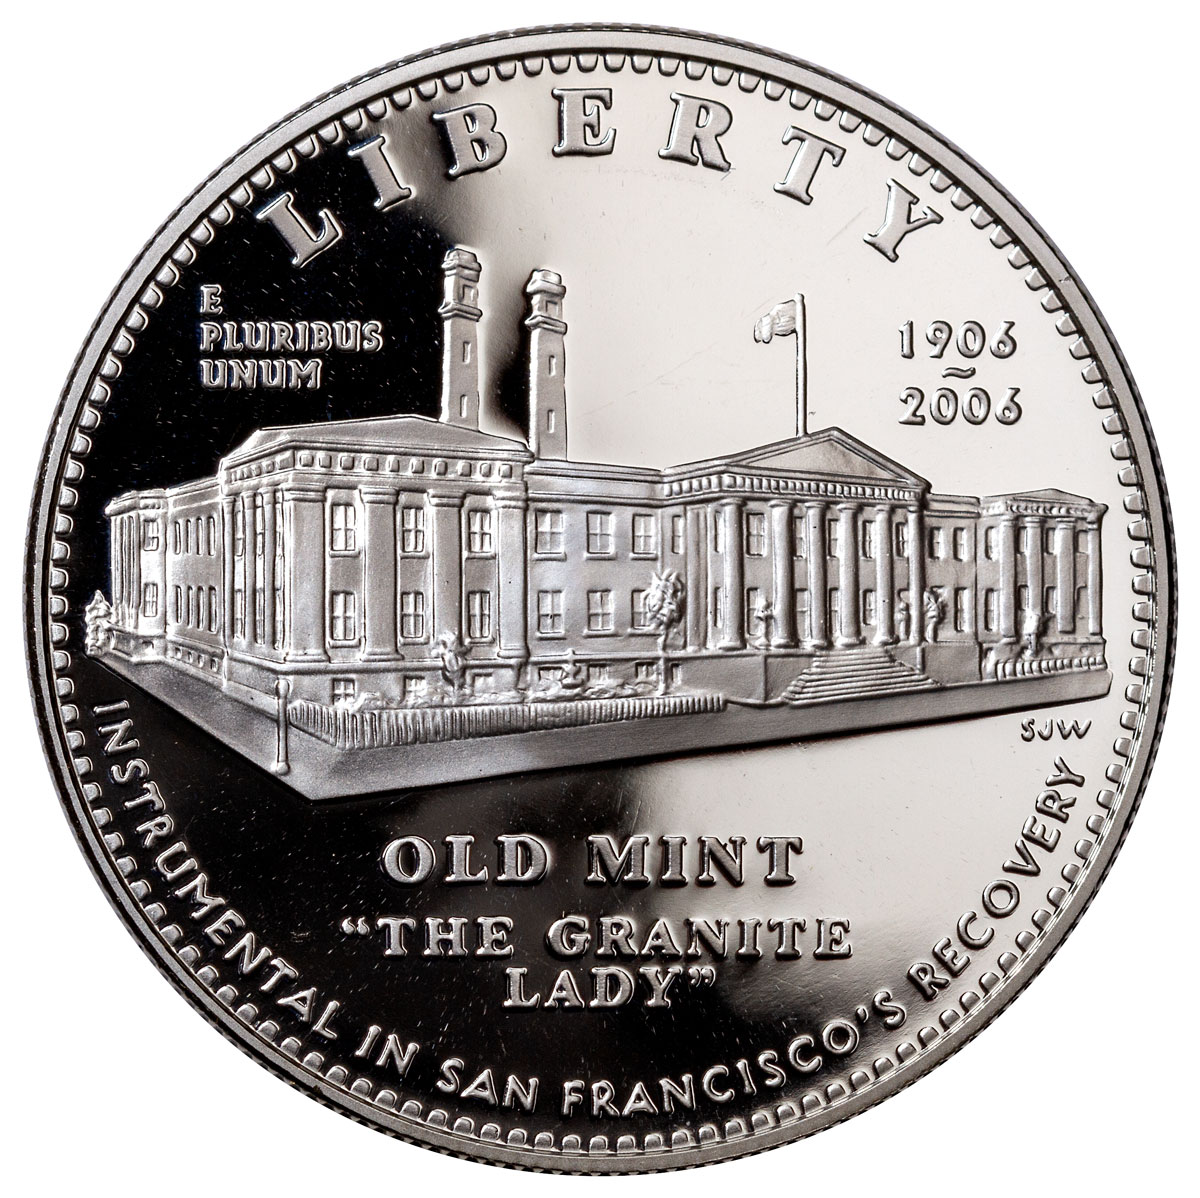 2006-S San Francisco Old Mint Commemorative Silver Dollar Proof